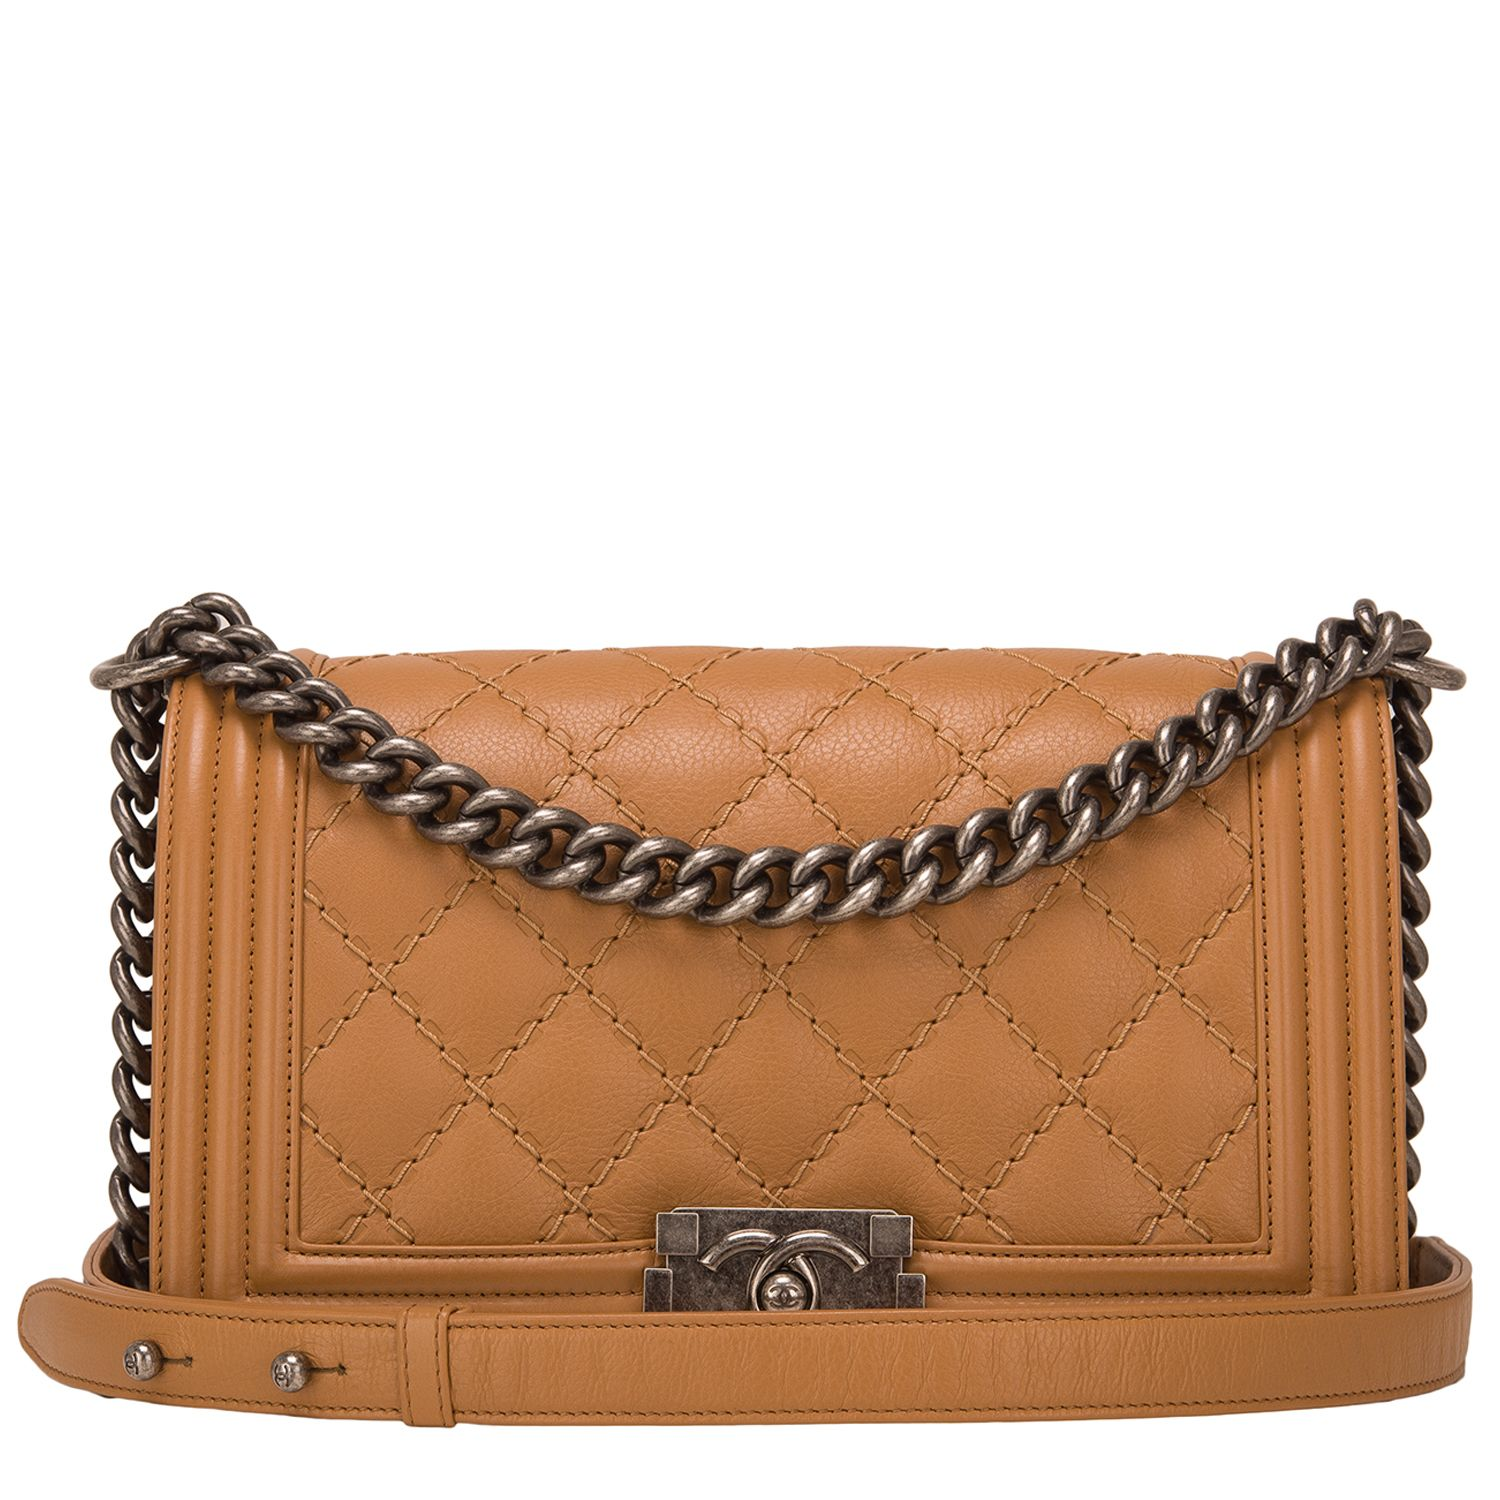 0100b9d675e8 Chanel Camel Quilted Calfskin Medium #BoyBag | Handbags to Die For ...